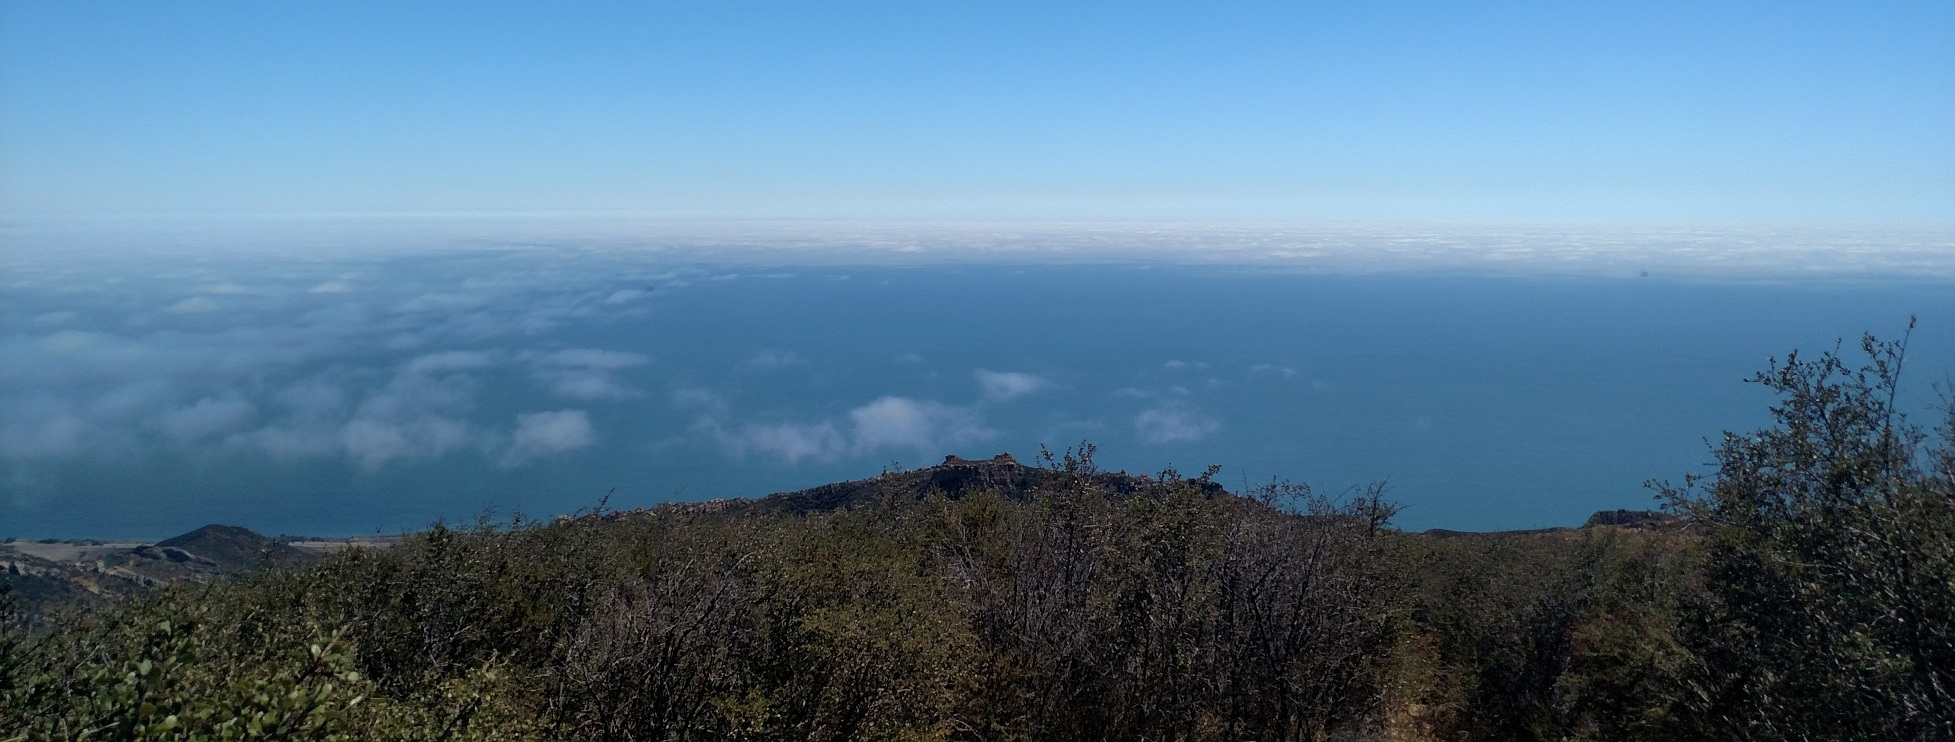 Ocean view from Gaviota Peak, Santa Barbara County, CA